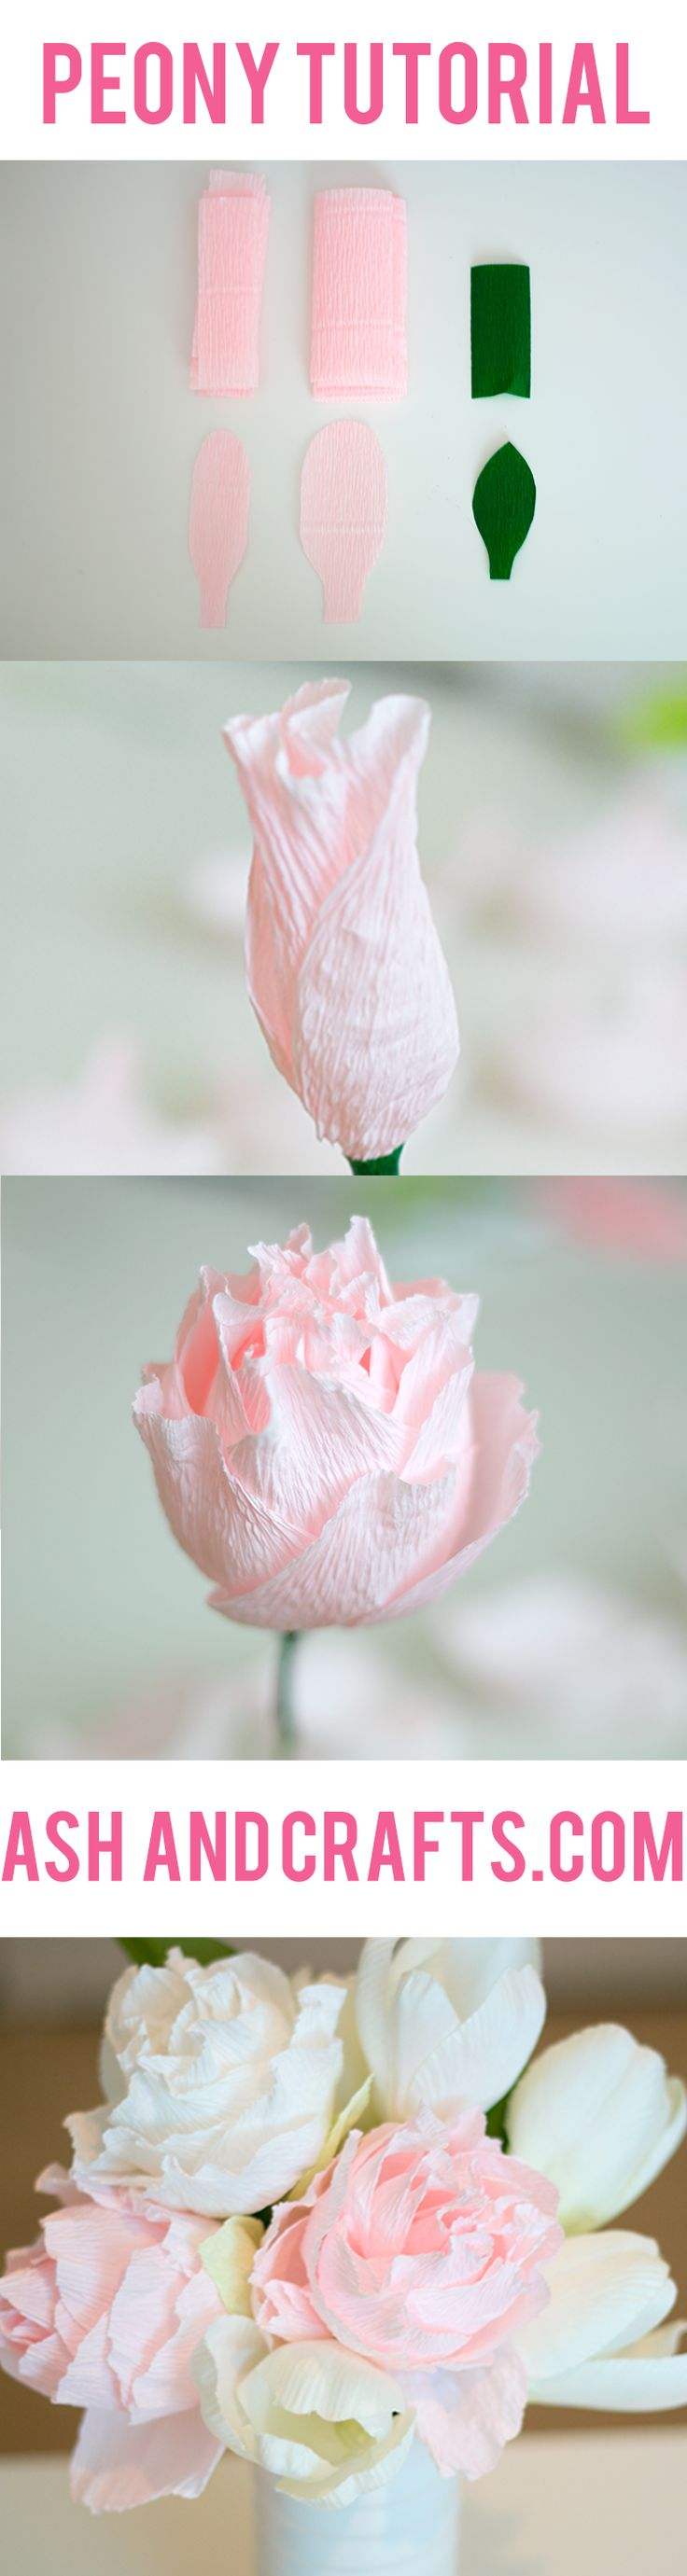 Paper Peony Tutorial - Ash and Crafts